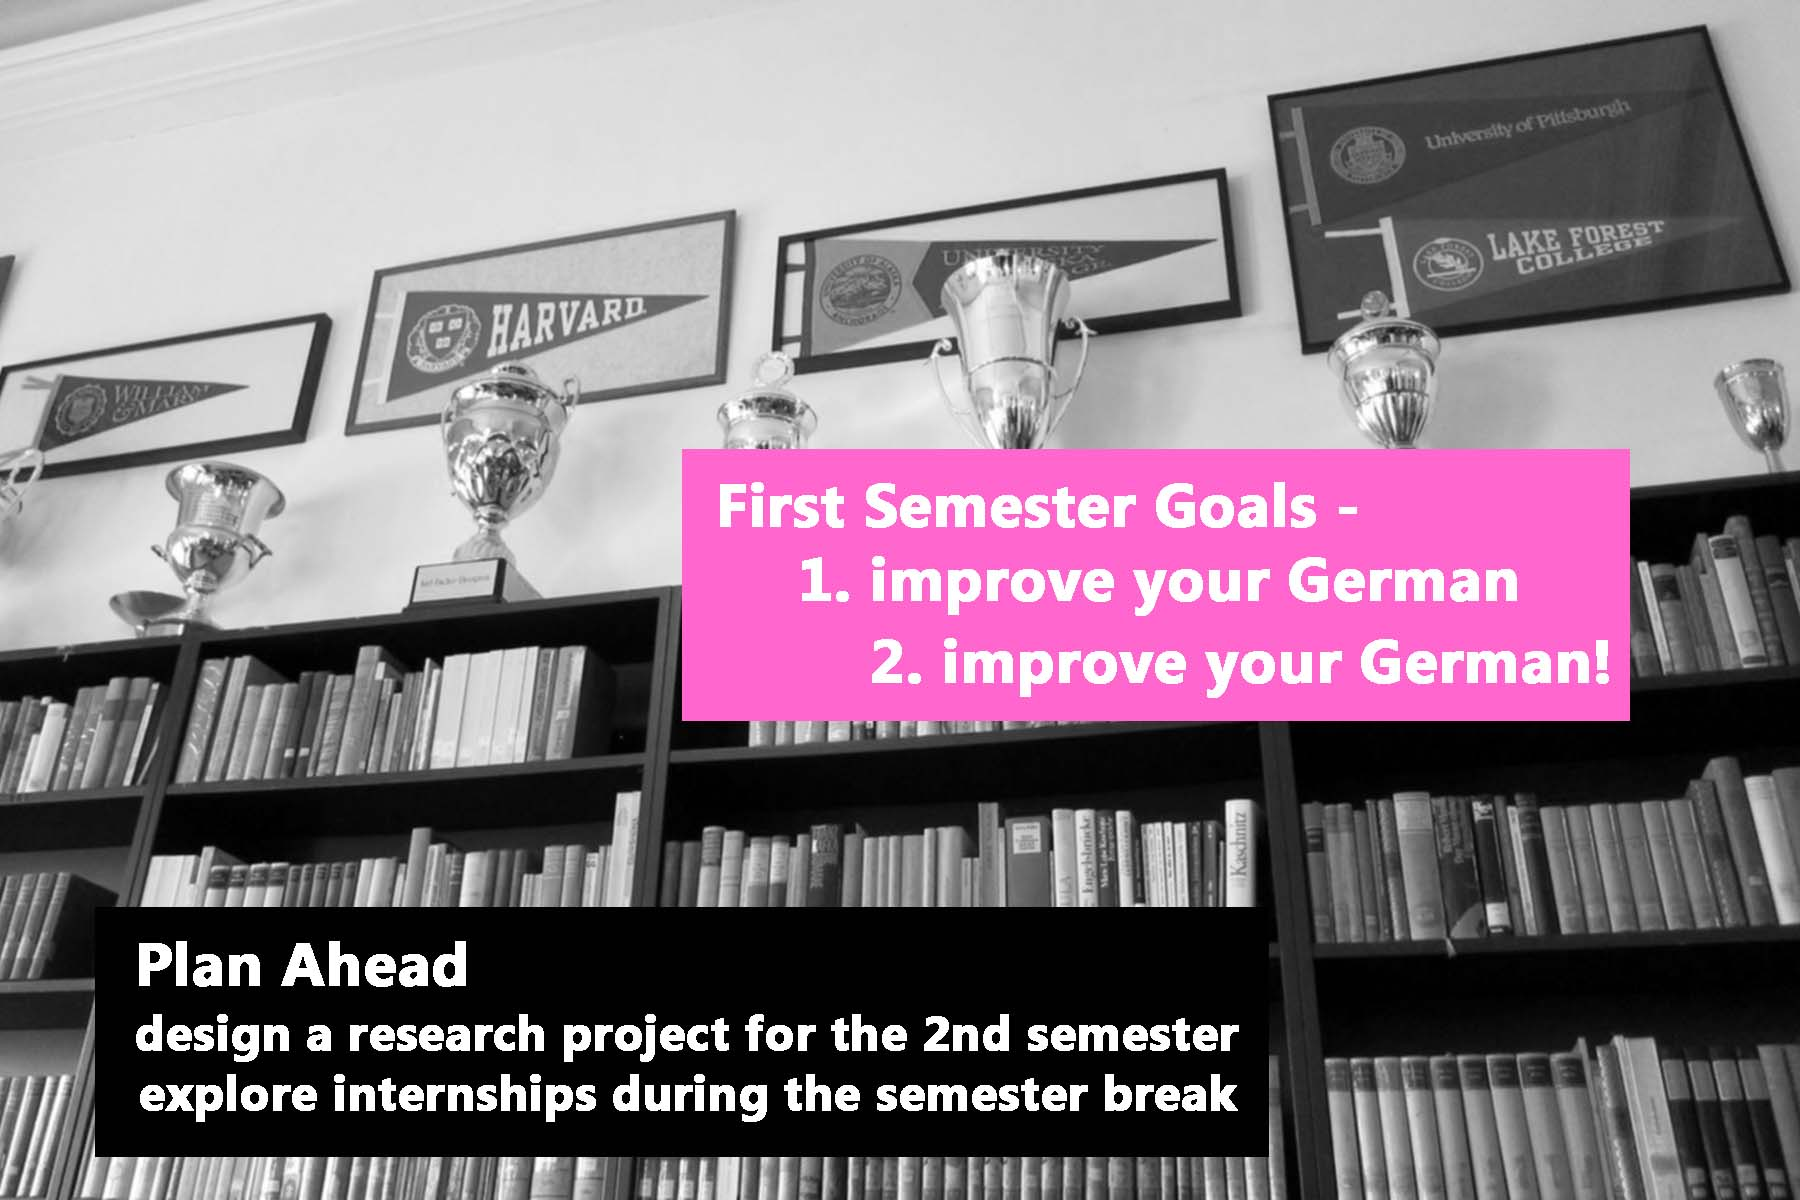 First Semester Goals: improve your German!